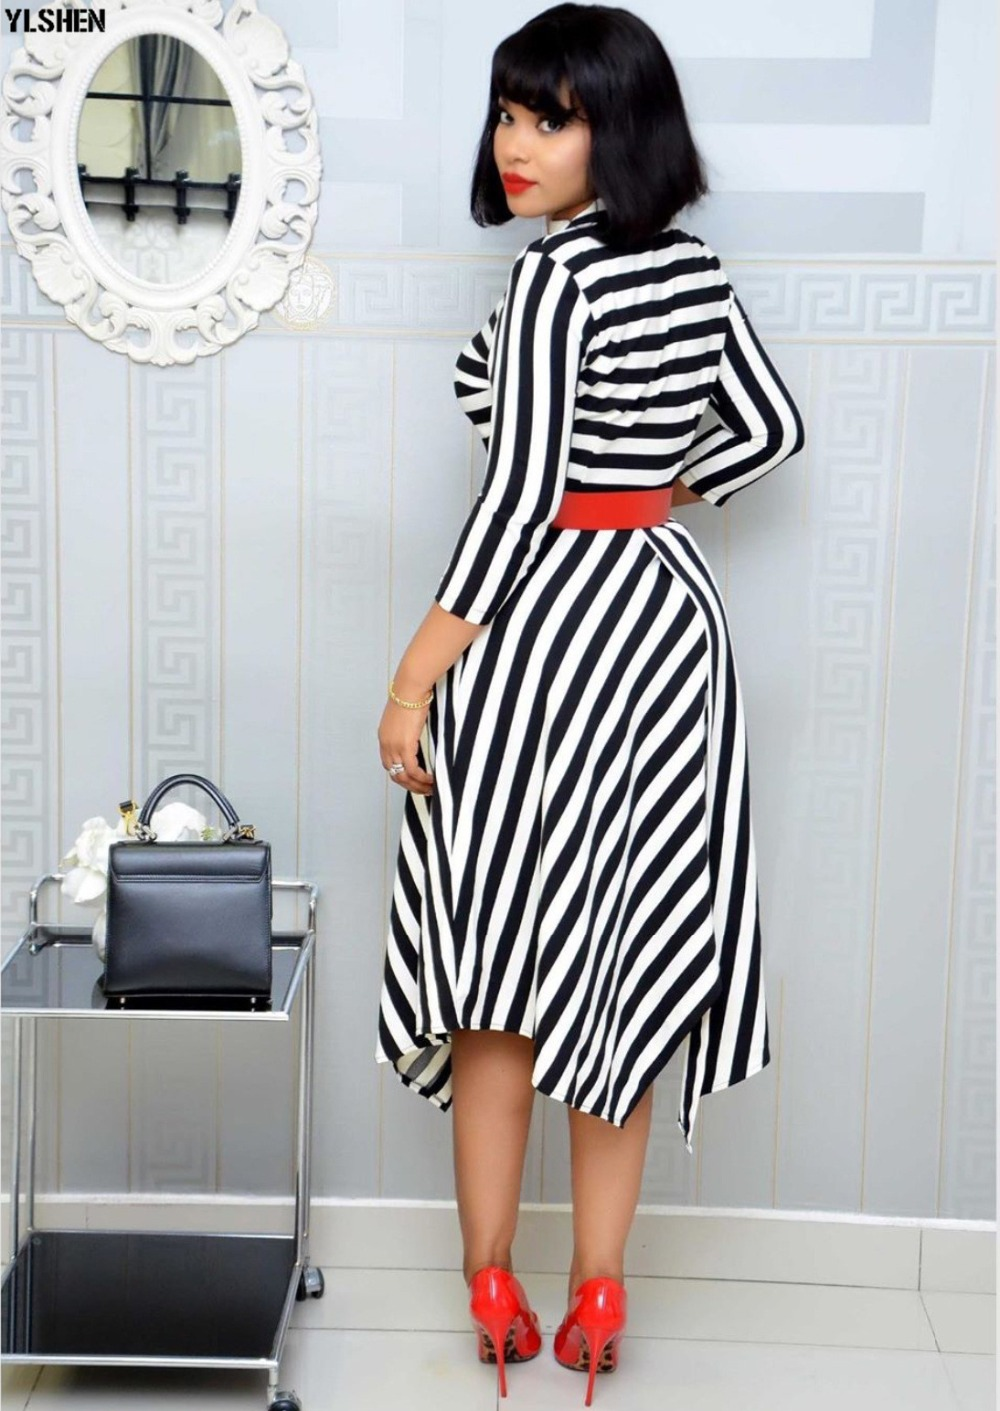 African Dresses For Women Stripe Africa Clothing Ankara Long Dress High Quality Length Fashion African Dress For Lady With Belt 34